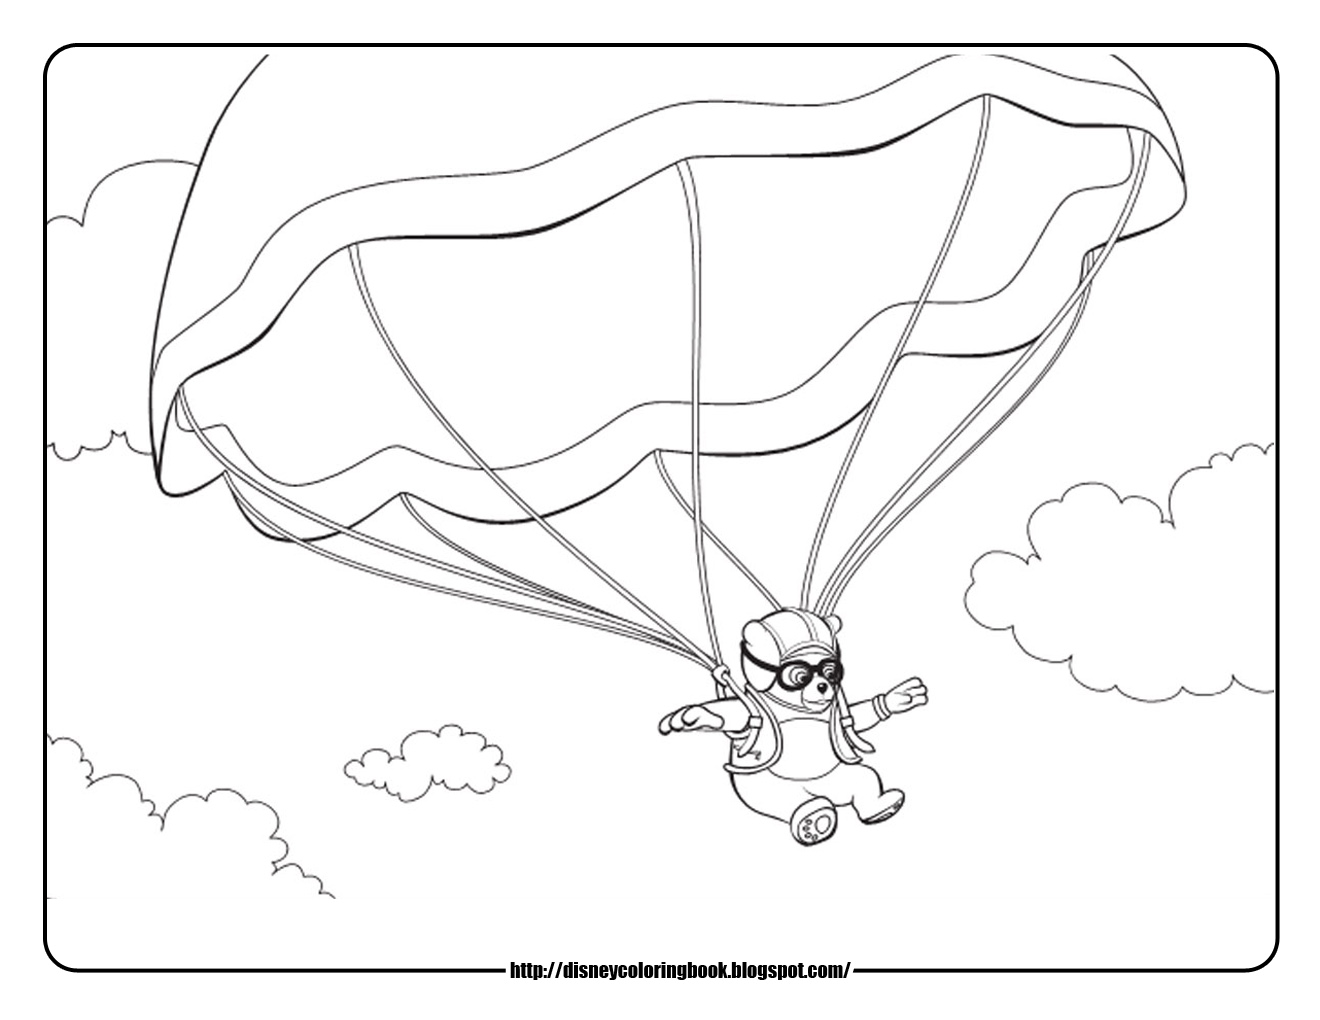 Disney Coloring Pages and Sheets for Kids: Special Agent Oso 2: Free ...